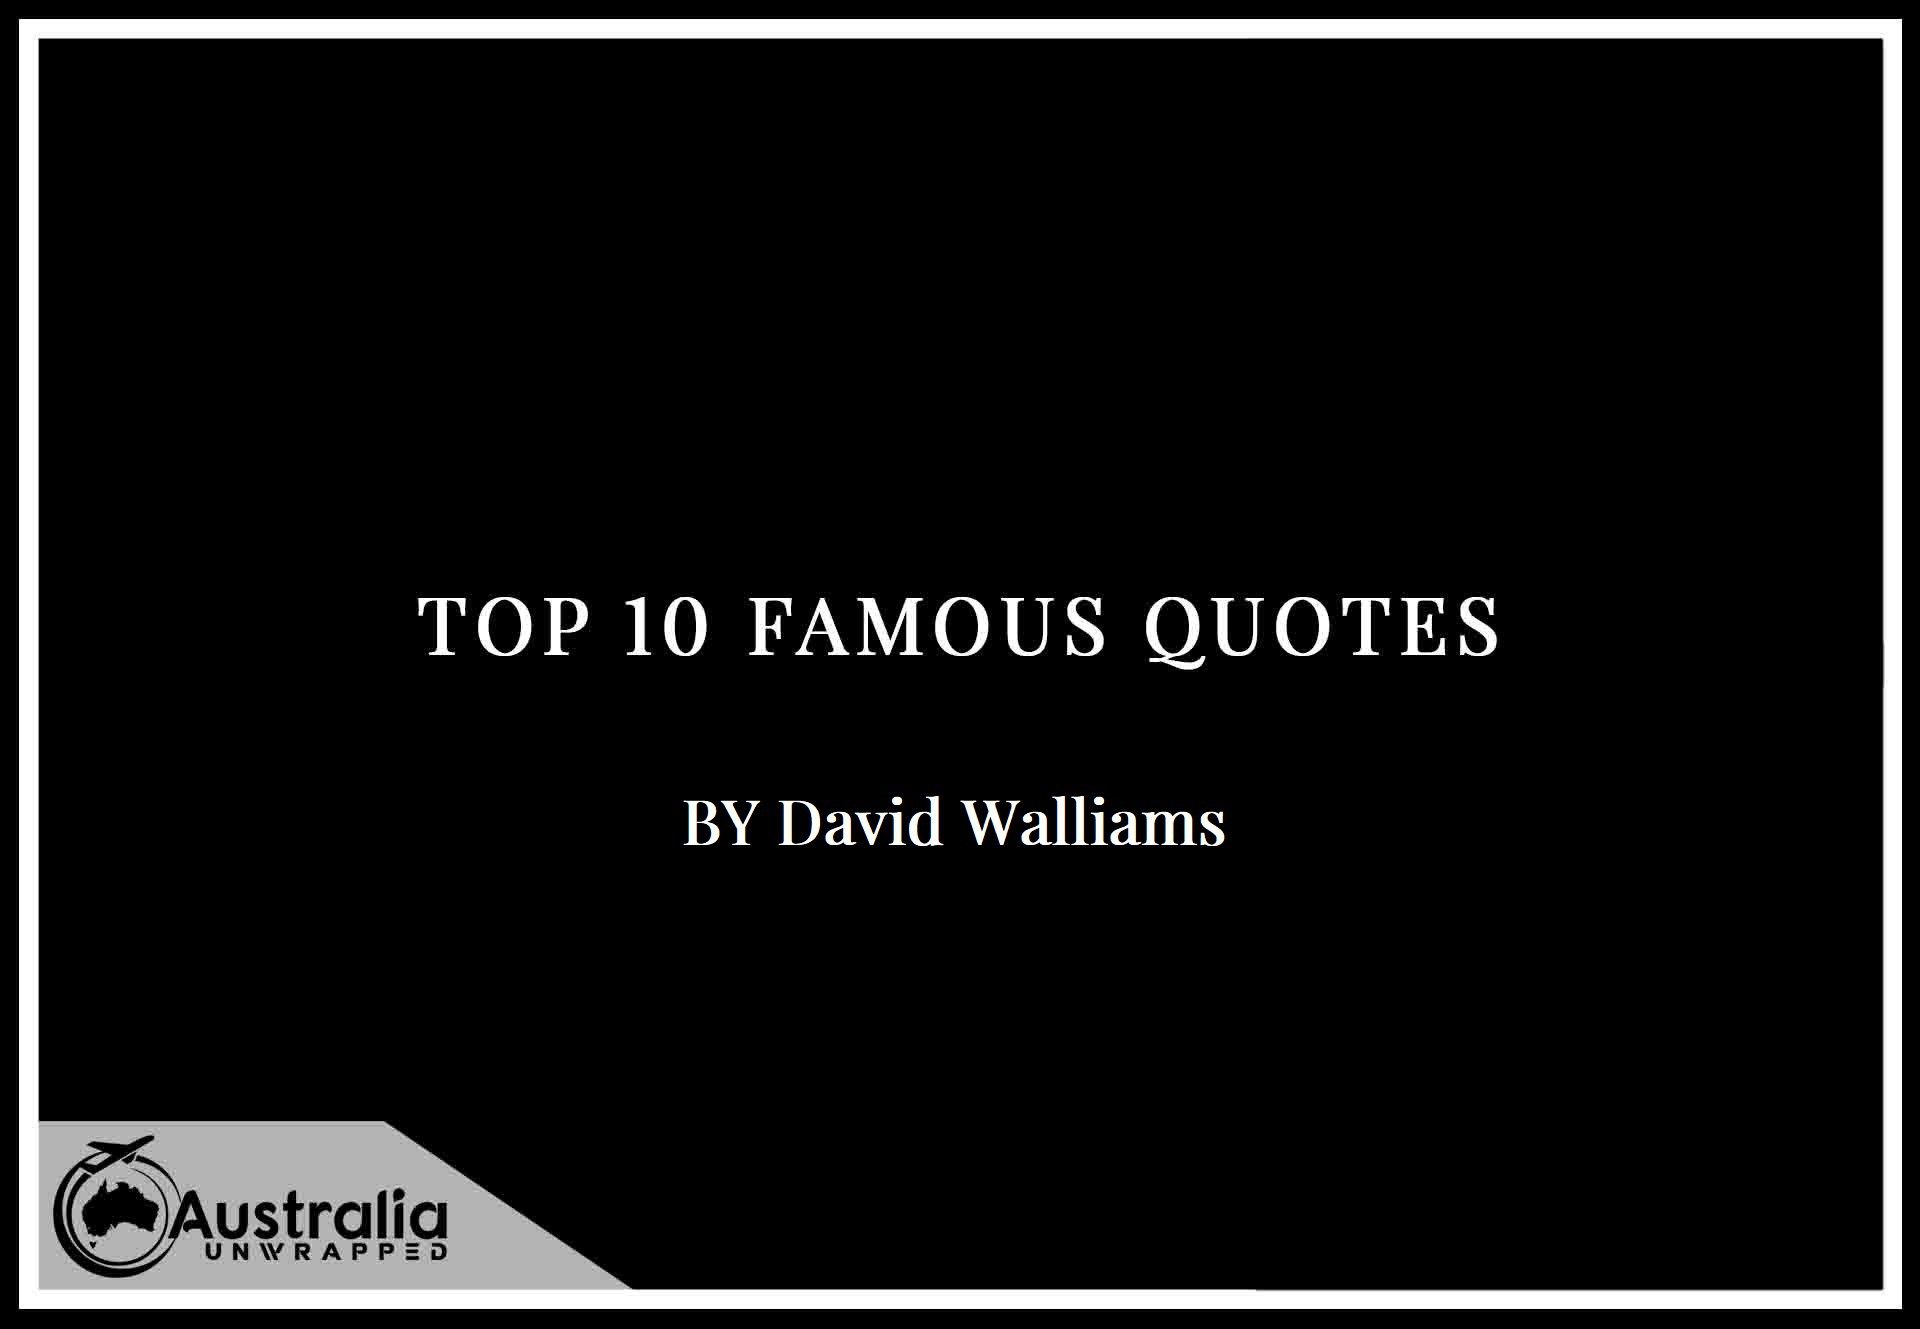 Top 10 Famous Quotes by Author David Walliams